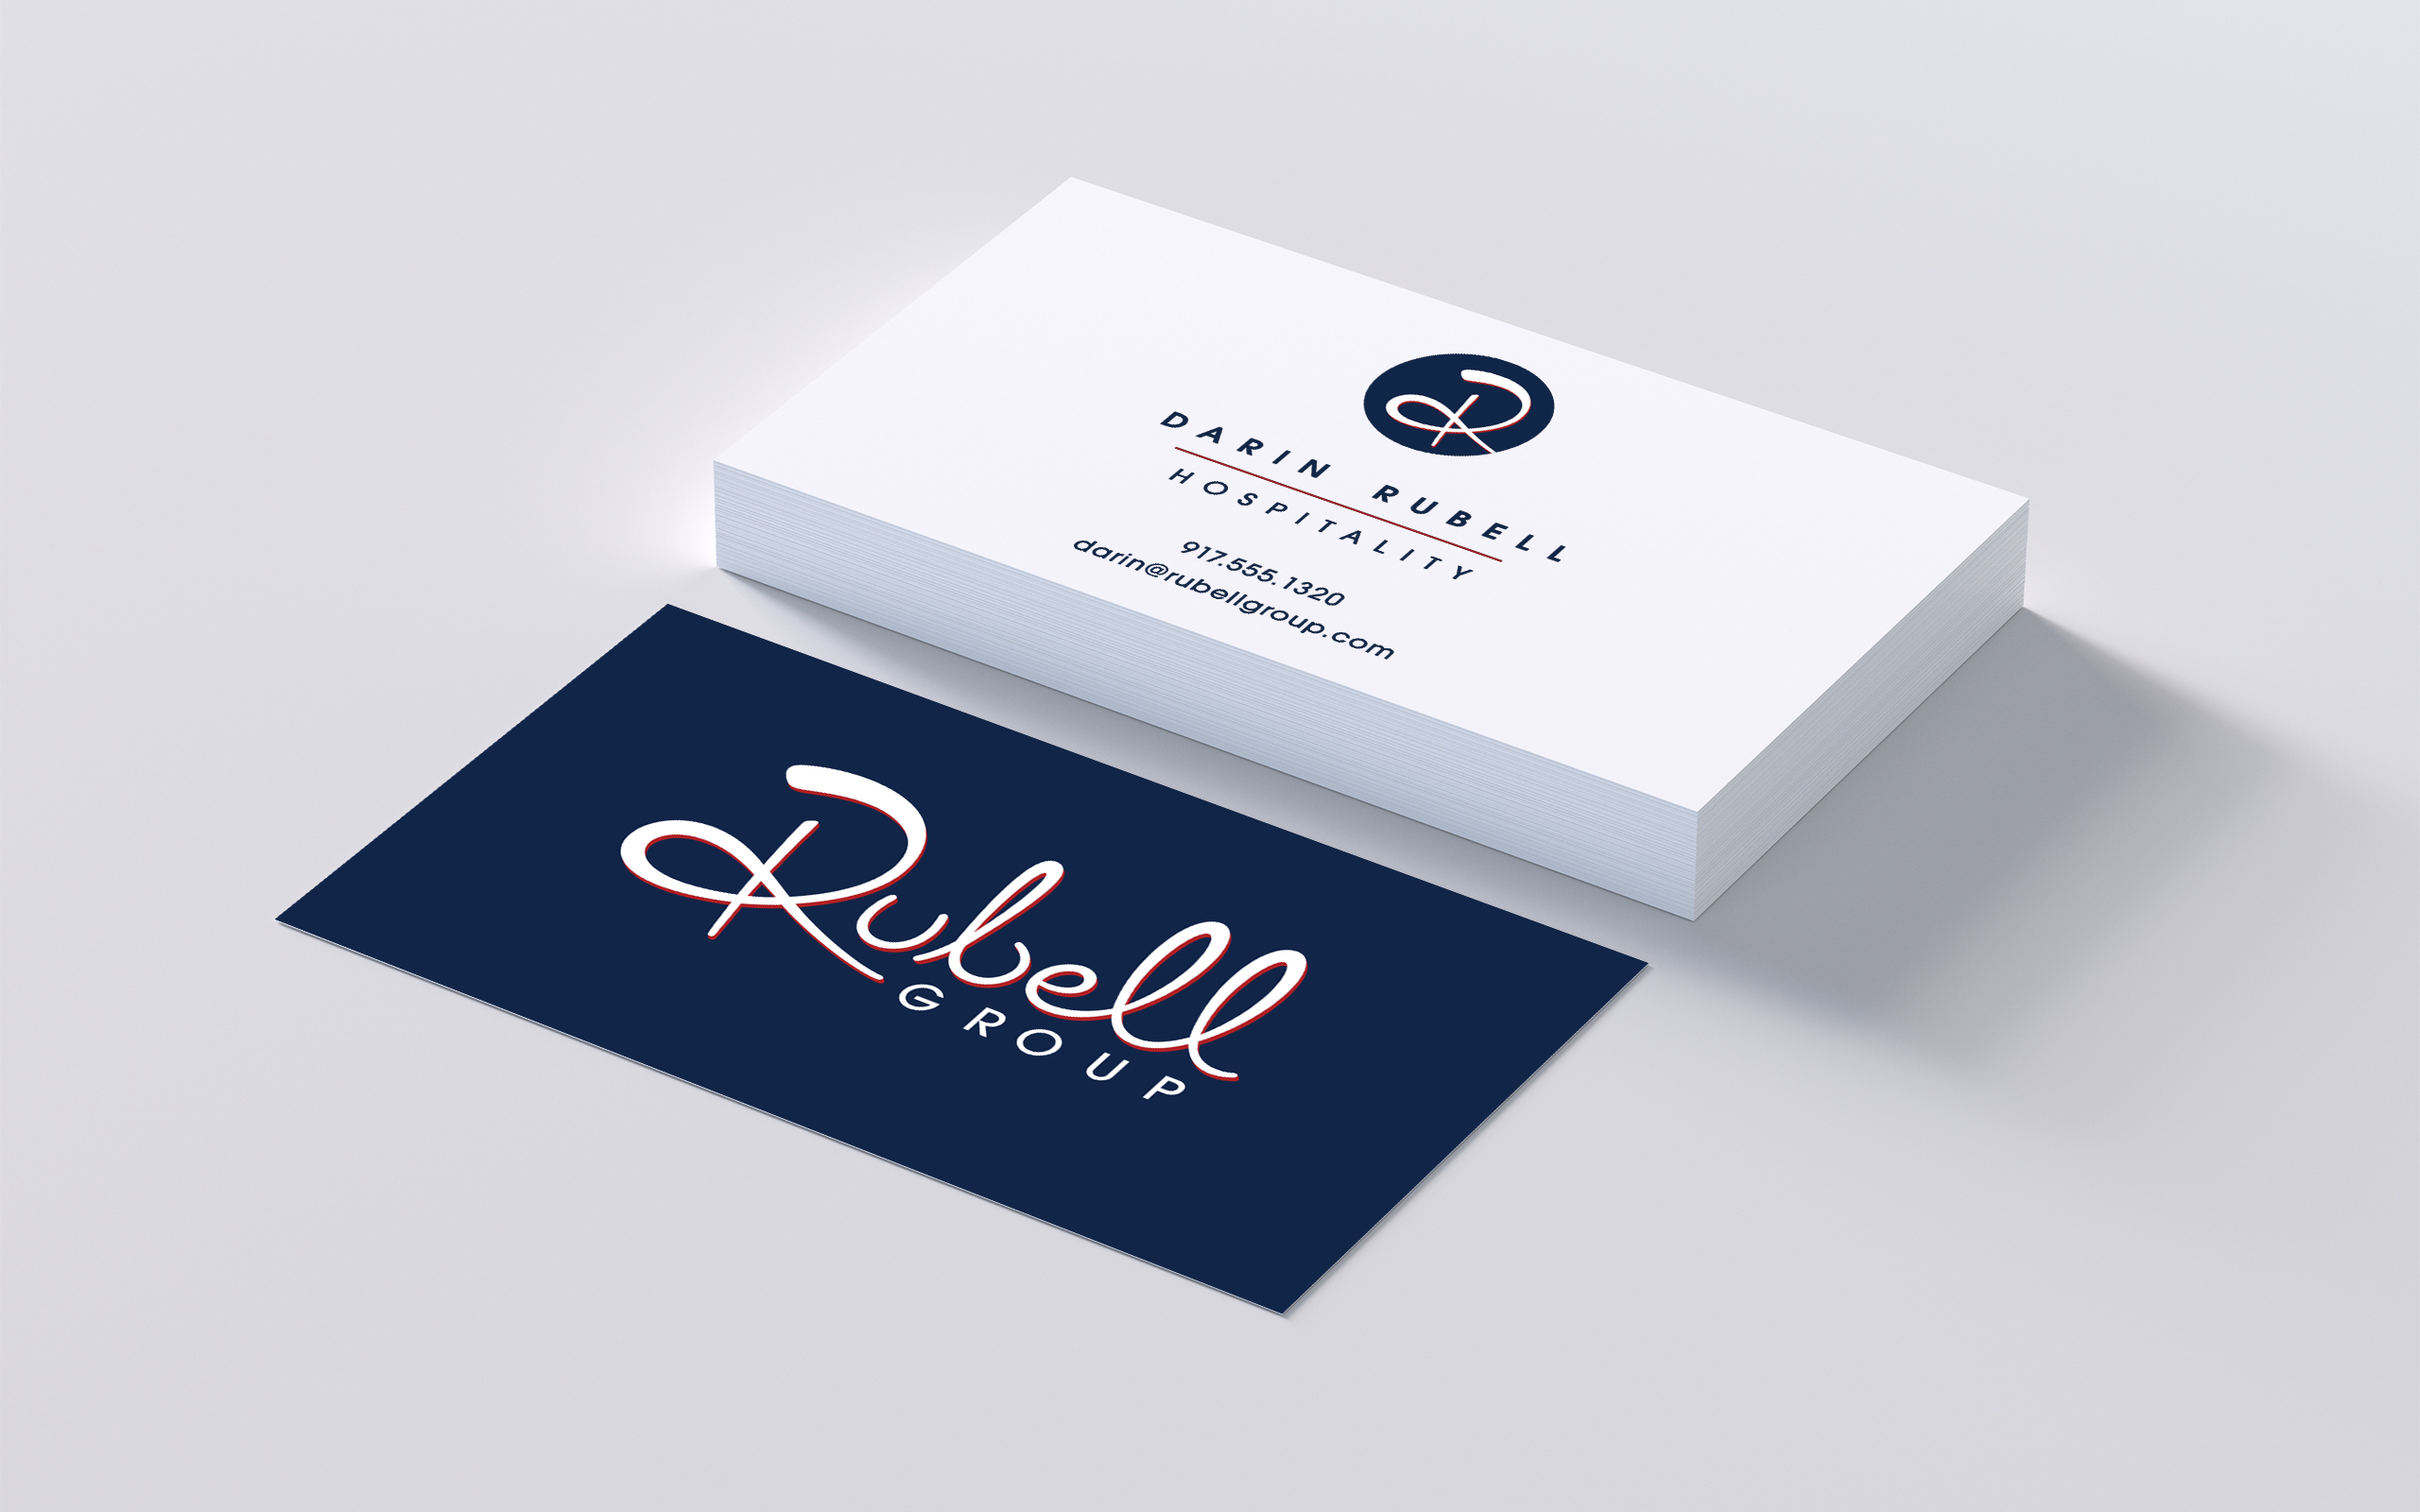 Rubell_cards